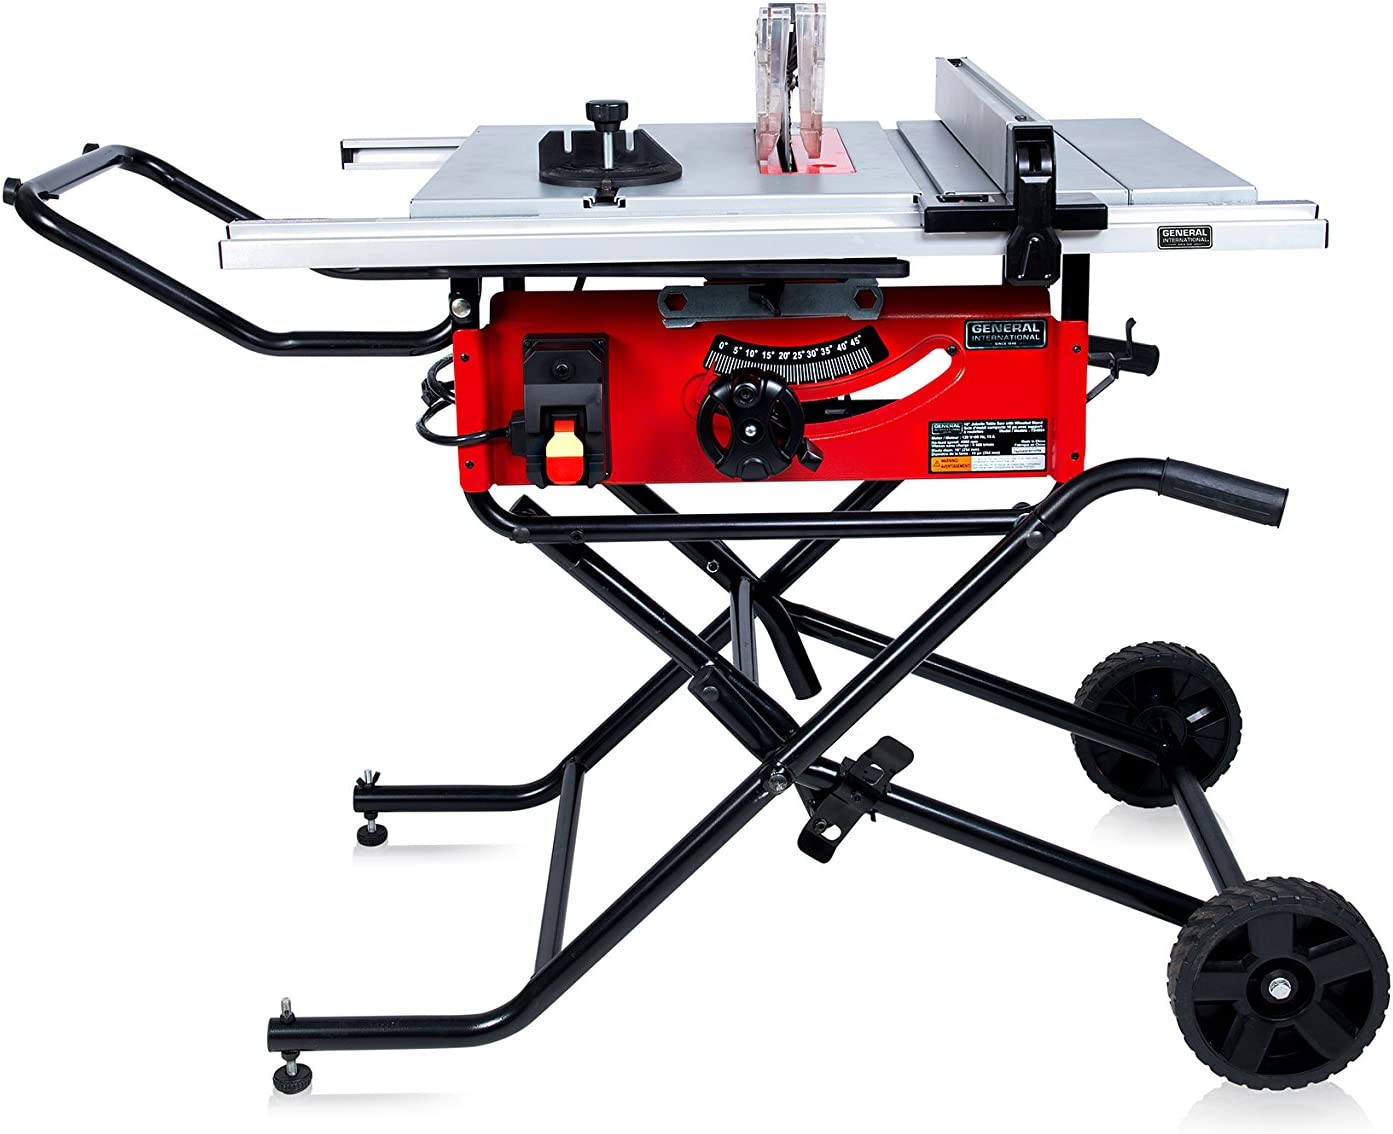 General International TS4004 Table Saws product image 1